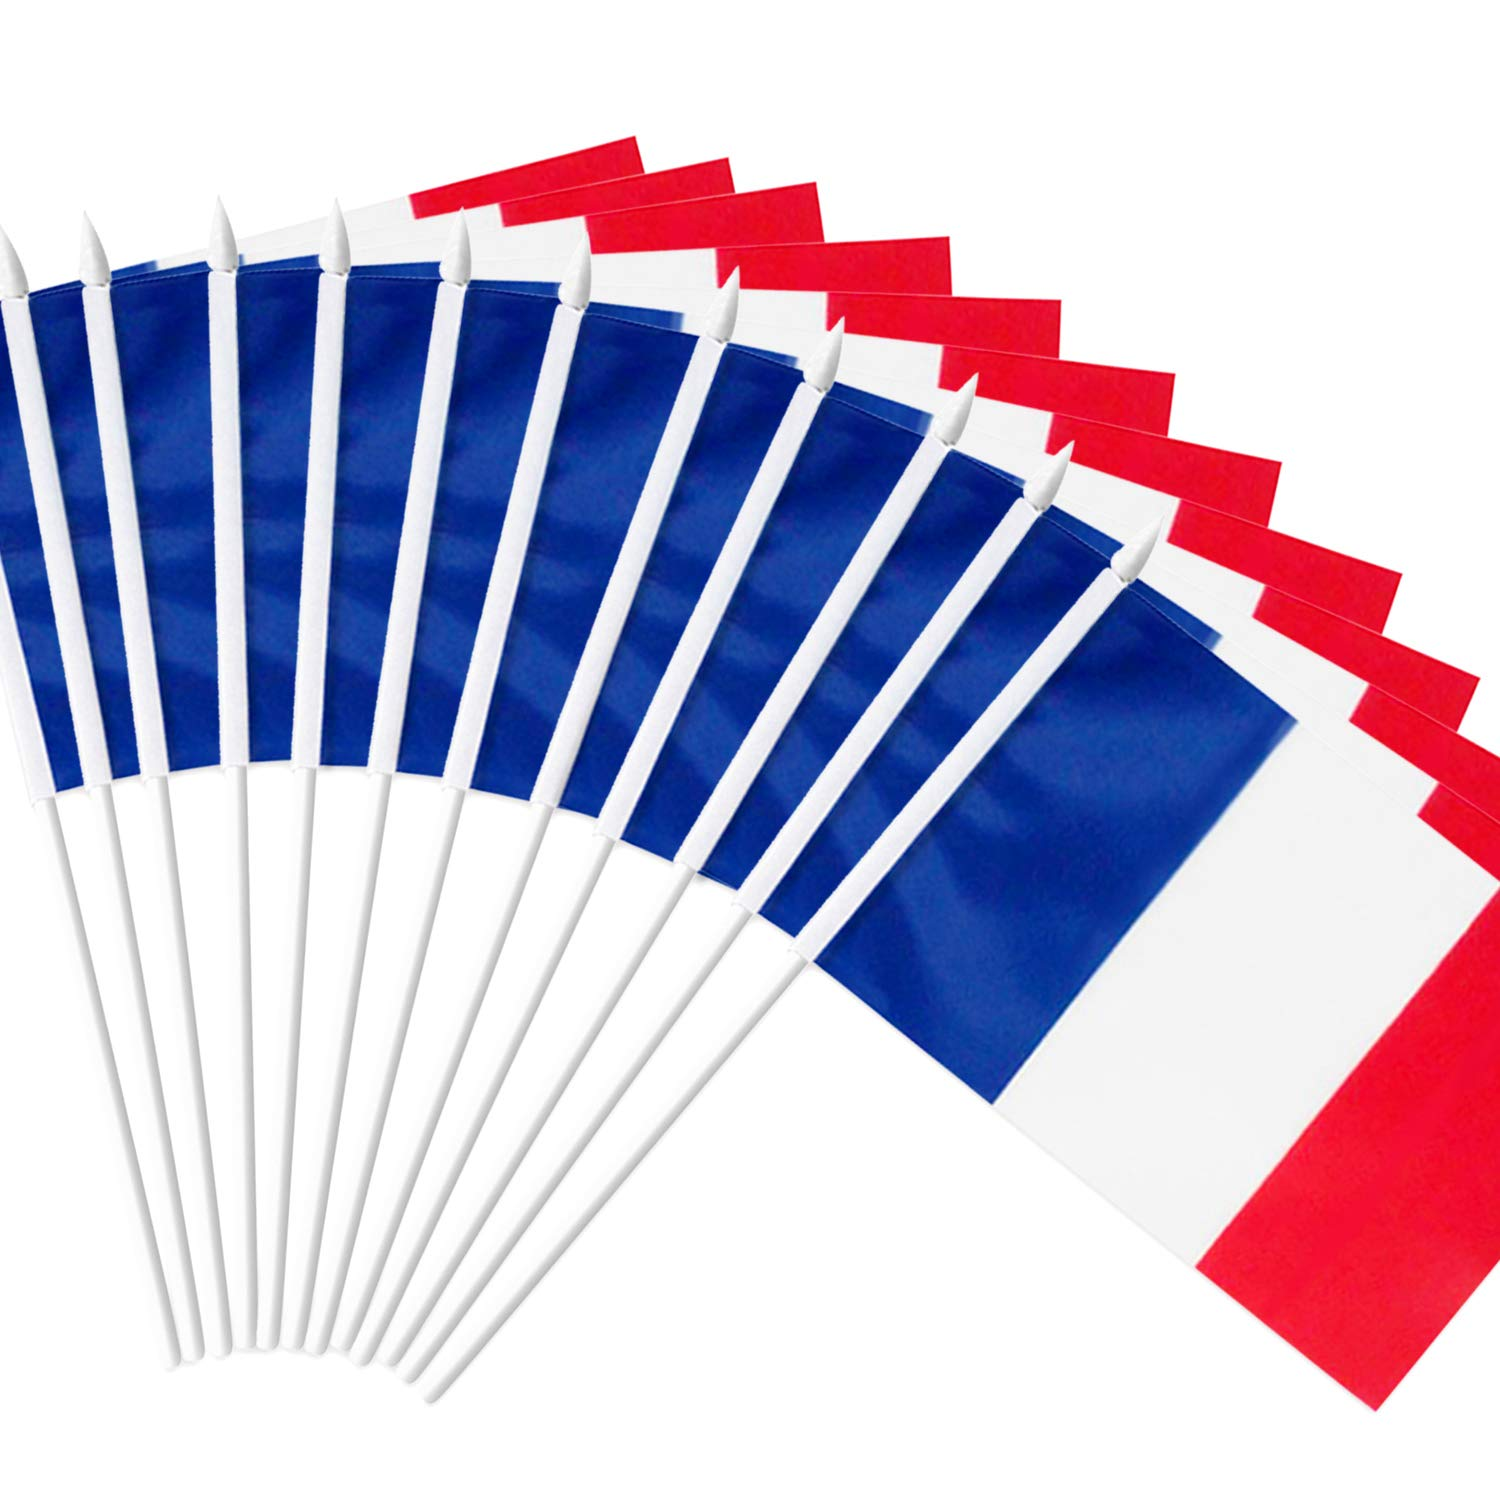 """Anley France Stick Flag, French 5x8 inch Handheld Mini Flag with 12"""" White Solid Pole - Vivid Color and Fade Resistant - 5 x 8 inch Hand Held Stick Flags with Spear Top (1 Dozen)"""